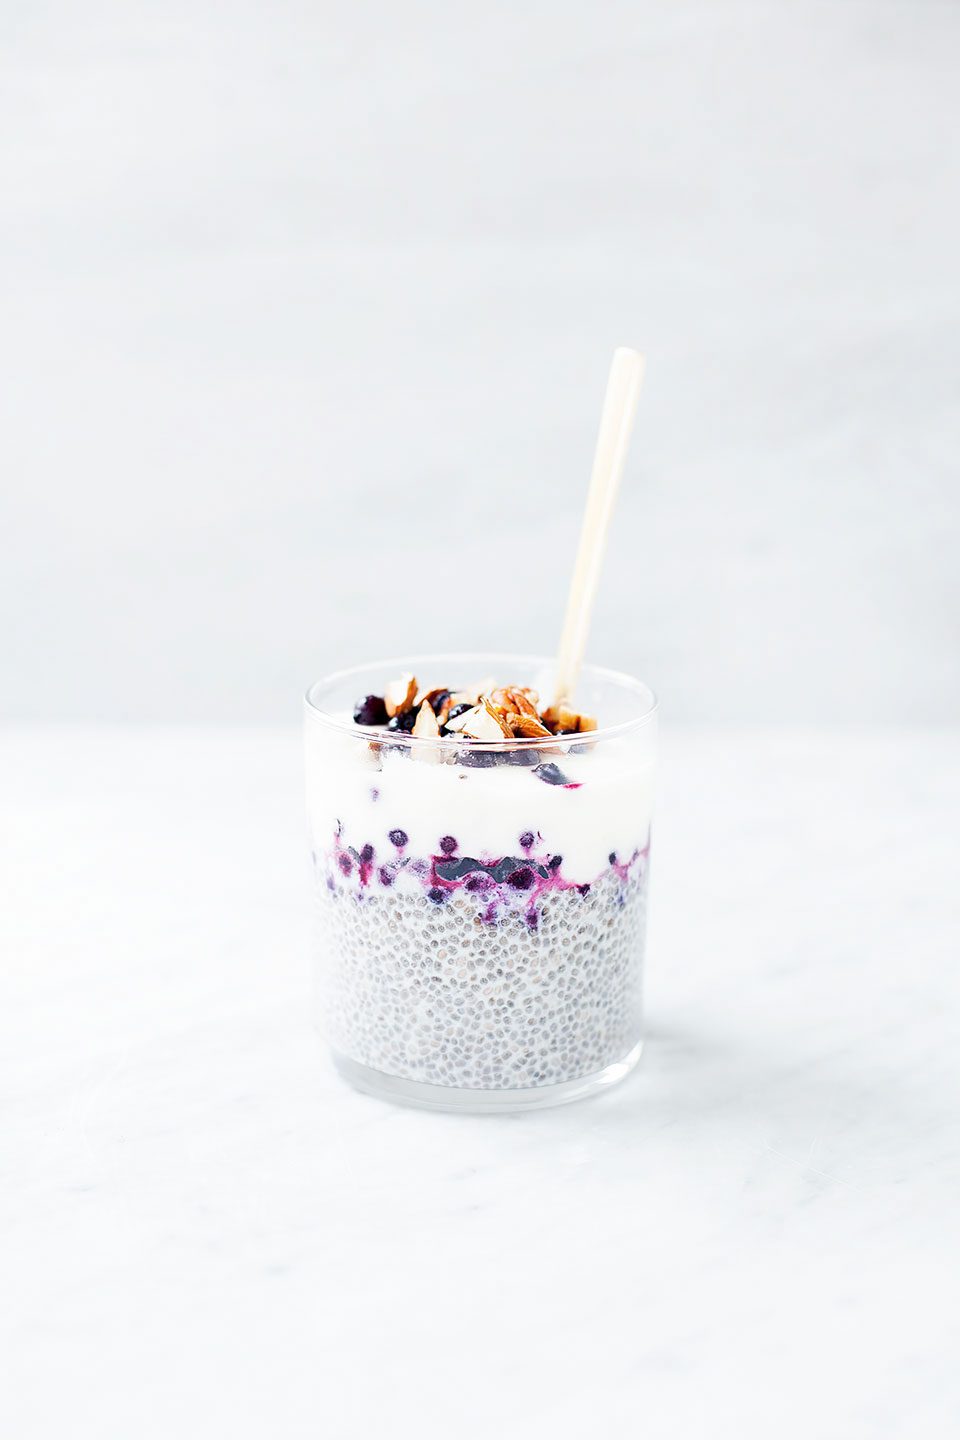 BLUEBERRY PIE CHIA PUDDING | Easy, healthy prep-ahead breakfast.| Vegan, paleo, dairy-free, and gluten-free. | LOVELEAF CO. #chiapudding #chiaseeds #chia #blueberry #blueberrypie #dairyfree #paleo #easybreakfast #paleobreakfast #chiaseedpudding